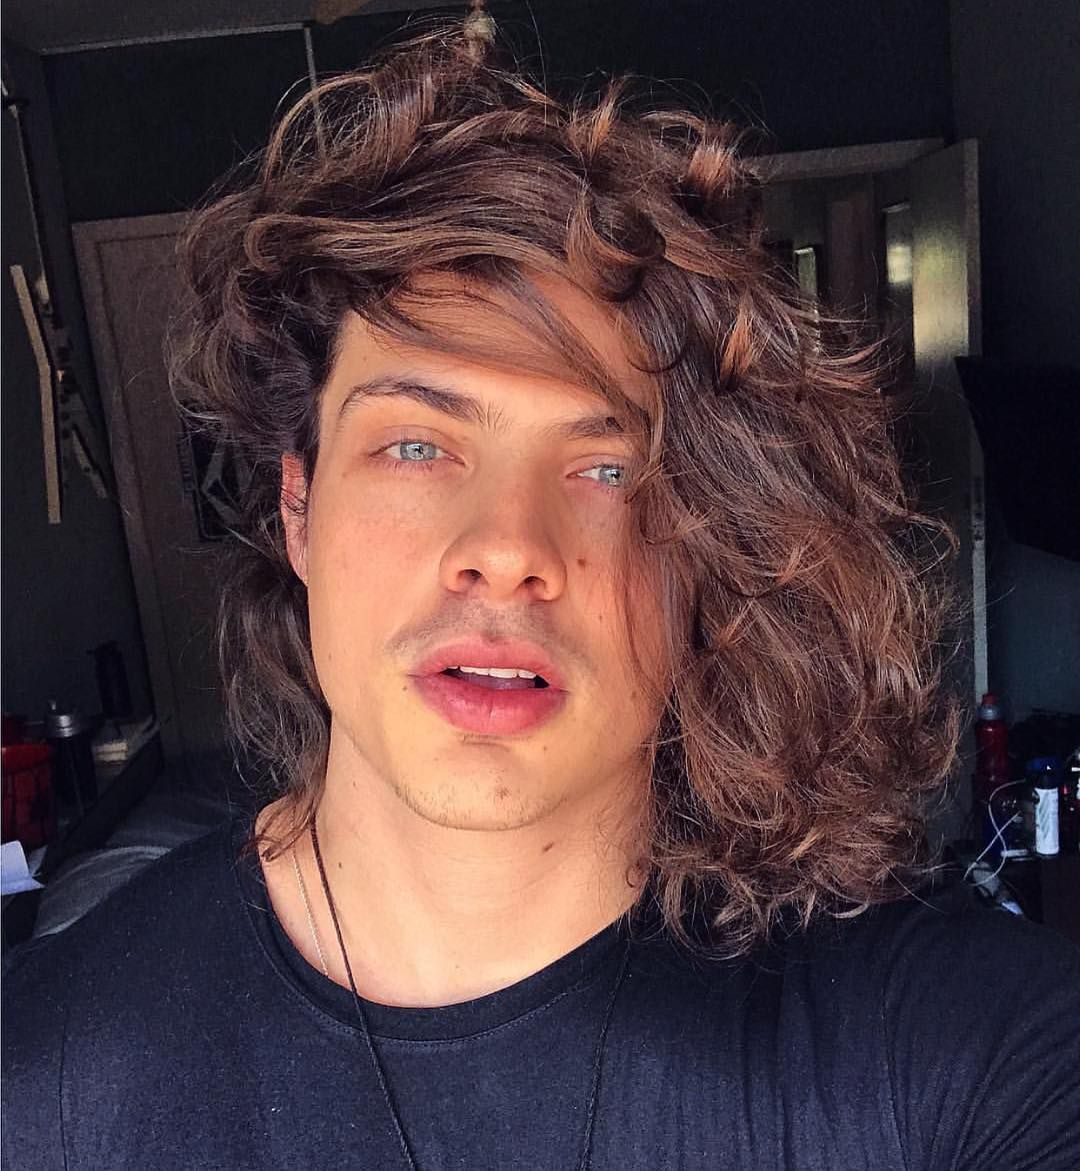 Delafiori delafiori ig delafiori mens long haircuts ideas